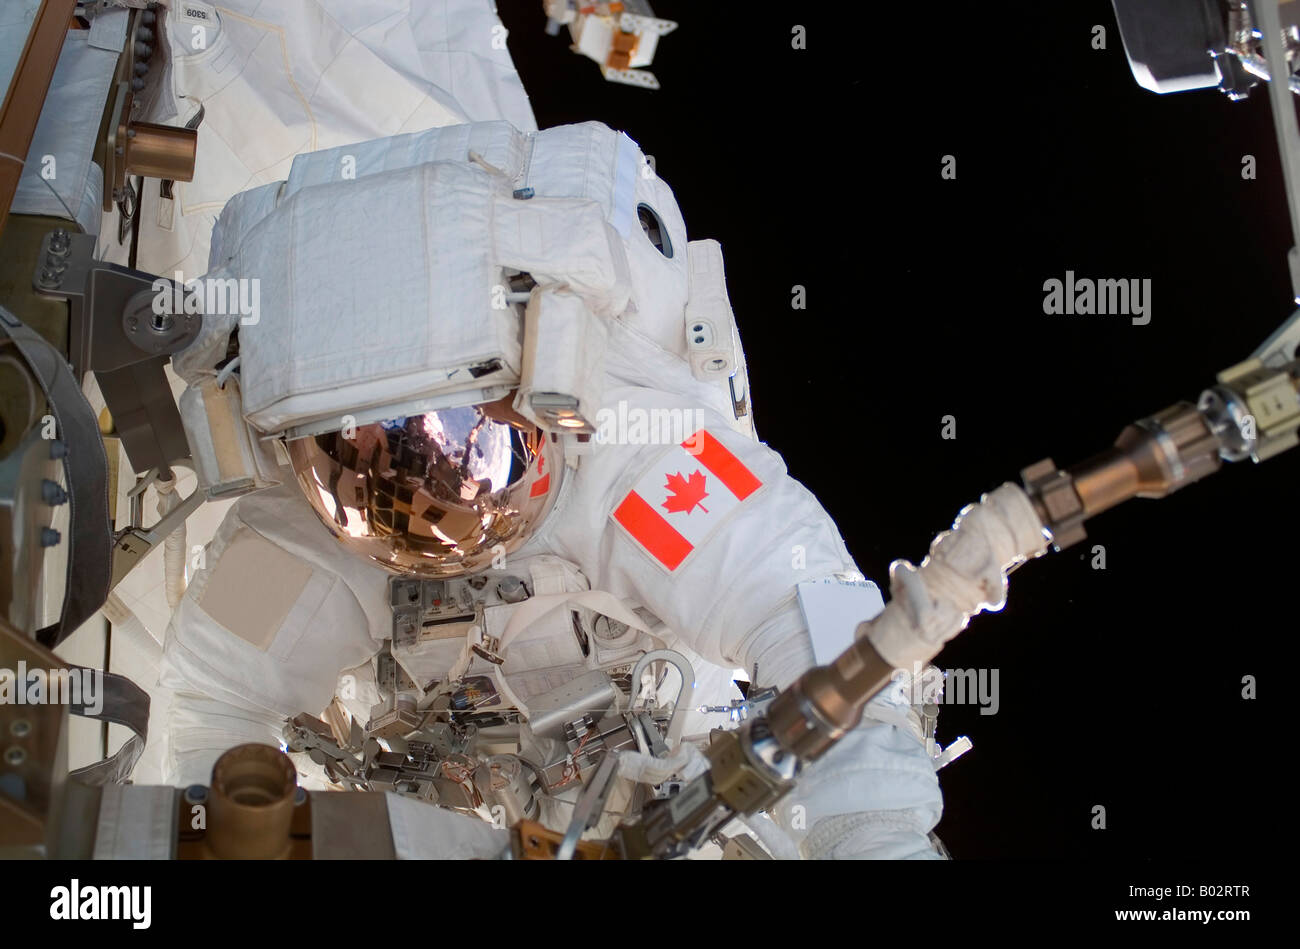 Astronaut participating in extravehicular activity. - Stock Image